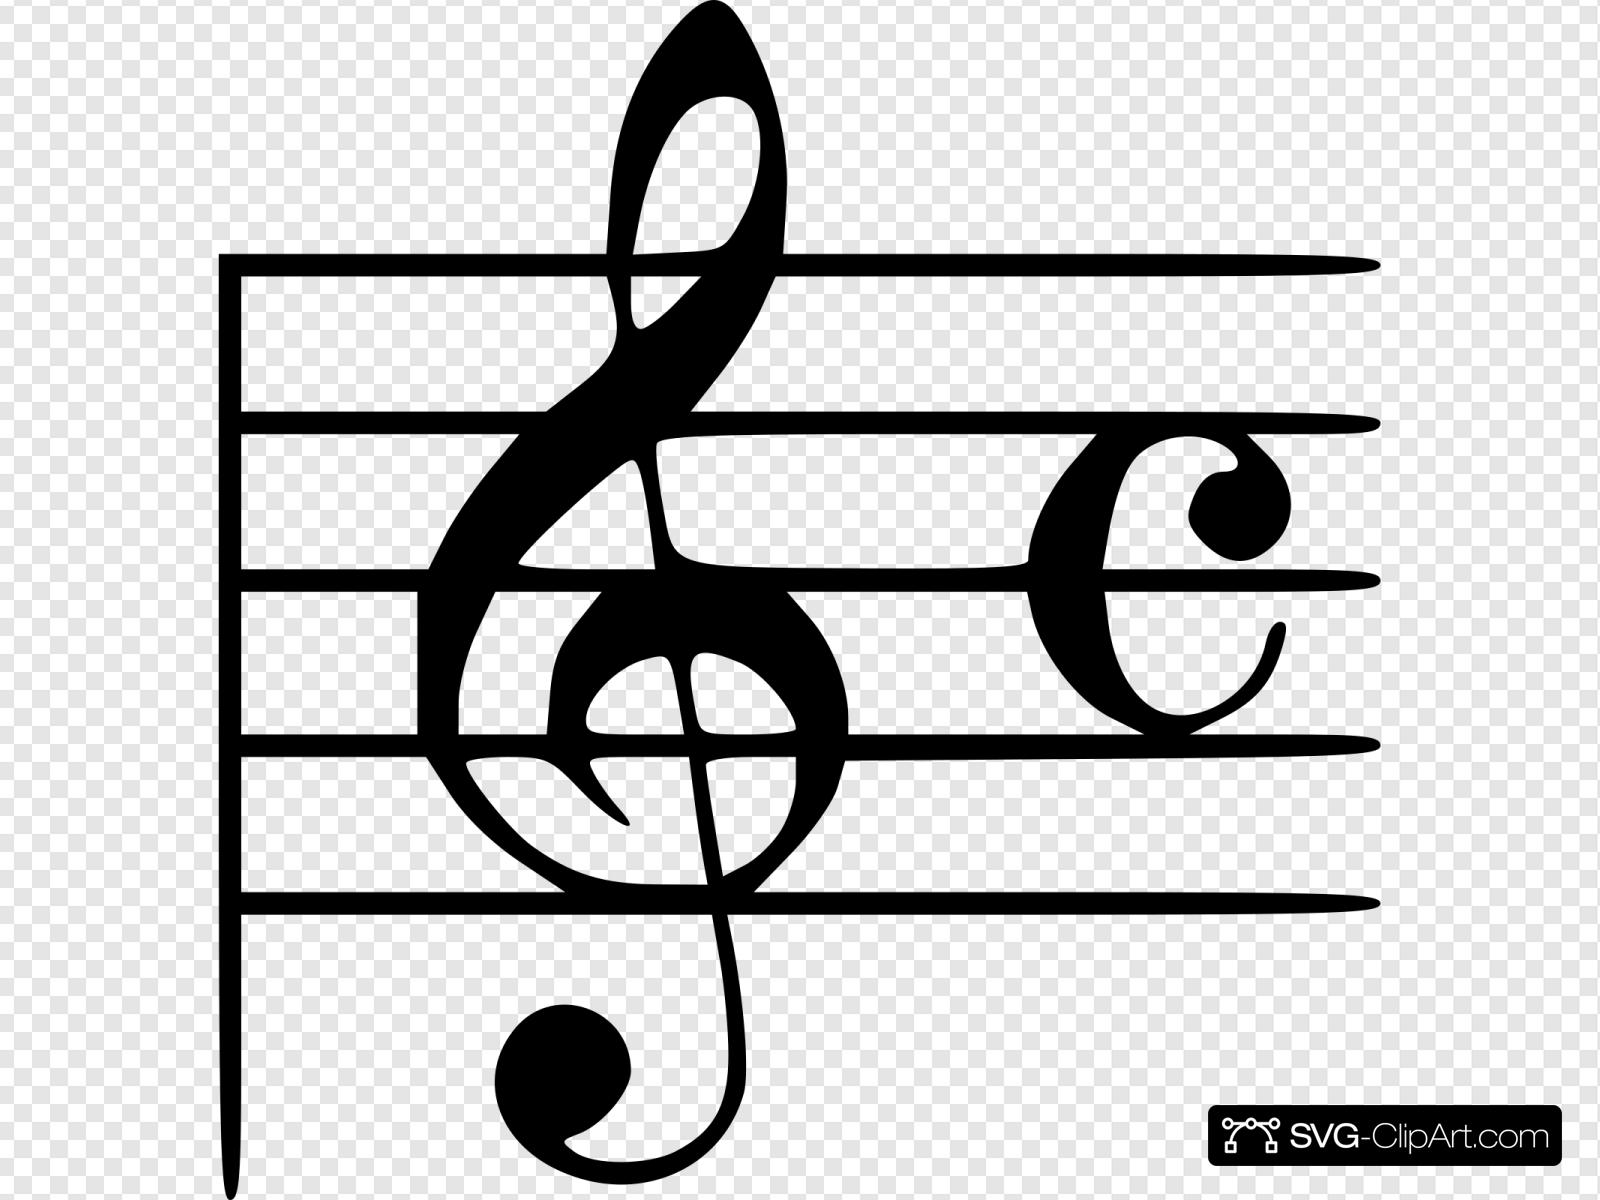 Treble Clef And Heart Song Element Vector Icon, Treble, Clef, Heart PNG and  Vector with Transparent Background for Free Download